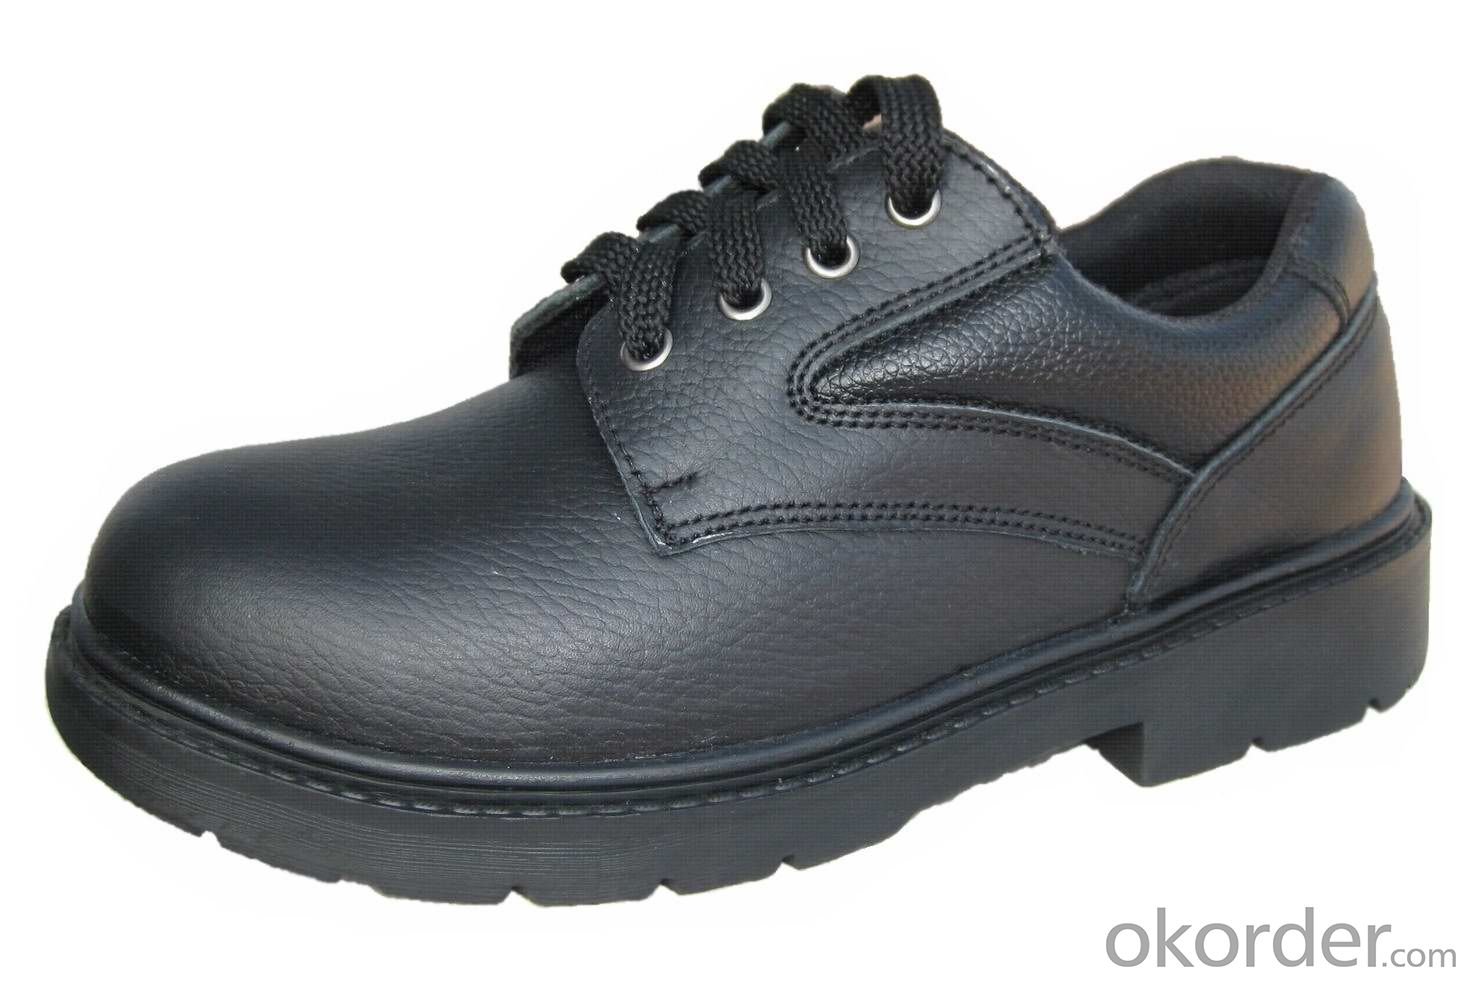 lace-up safety shoes-Men's 6